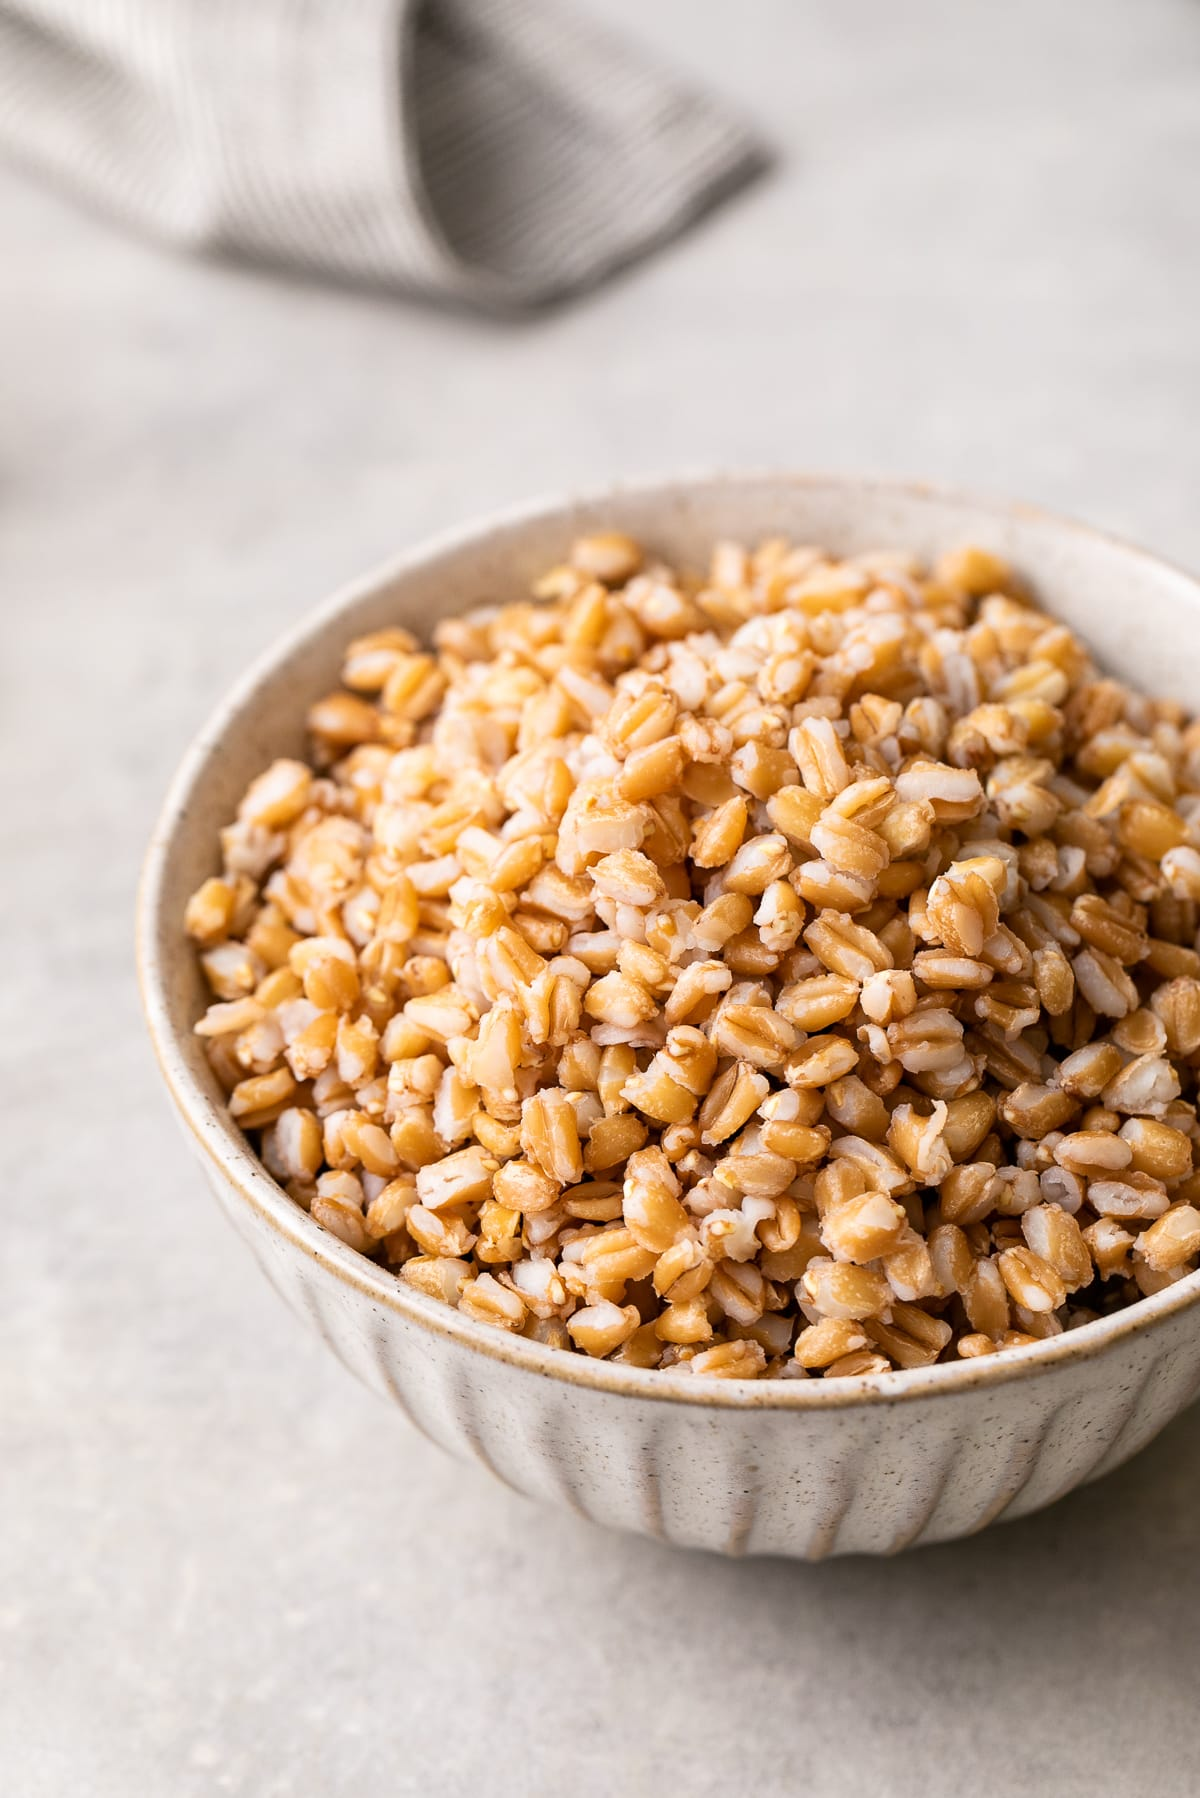 side angle view of a bowl filled with cooked farro.